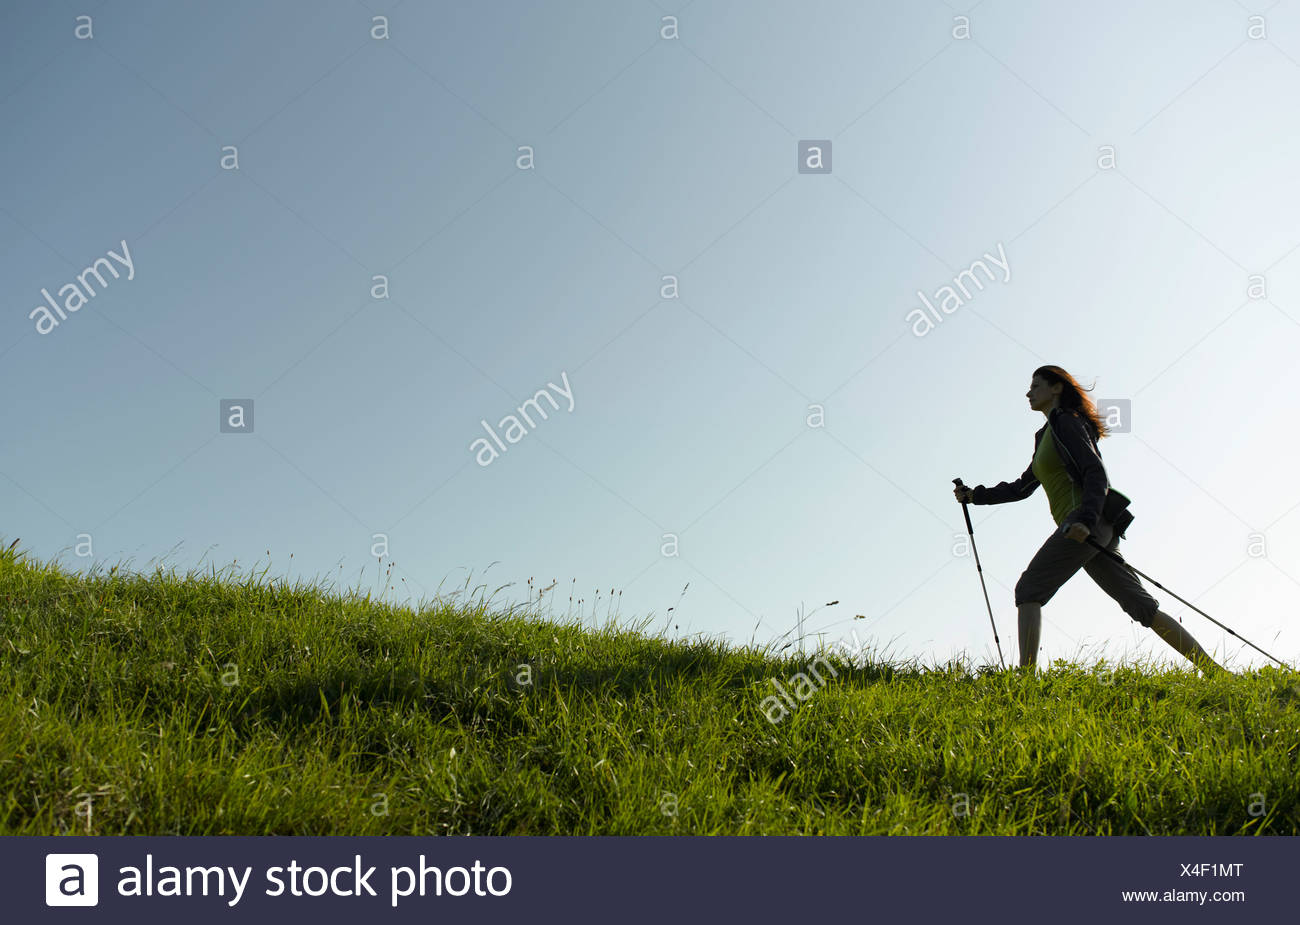 A woman out hiking, using walking poles - Stock Image